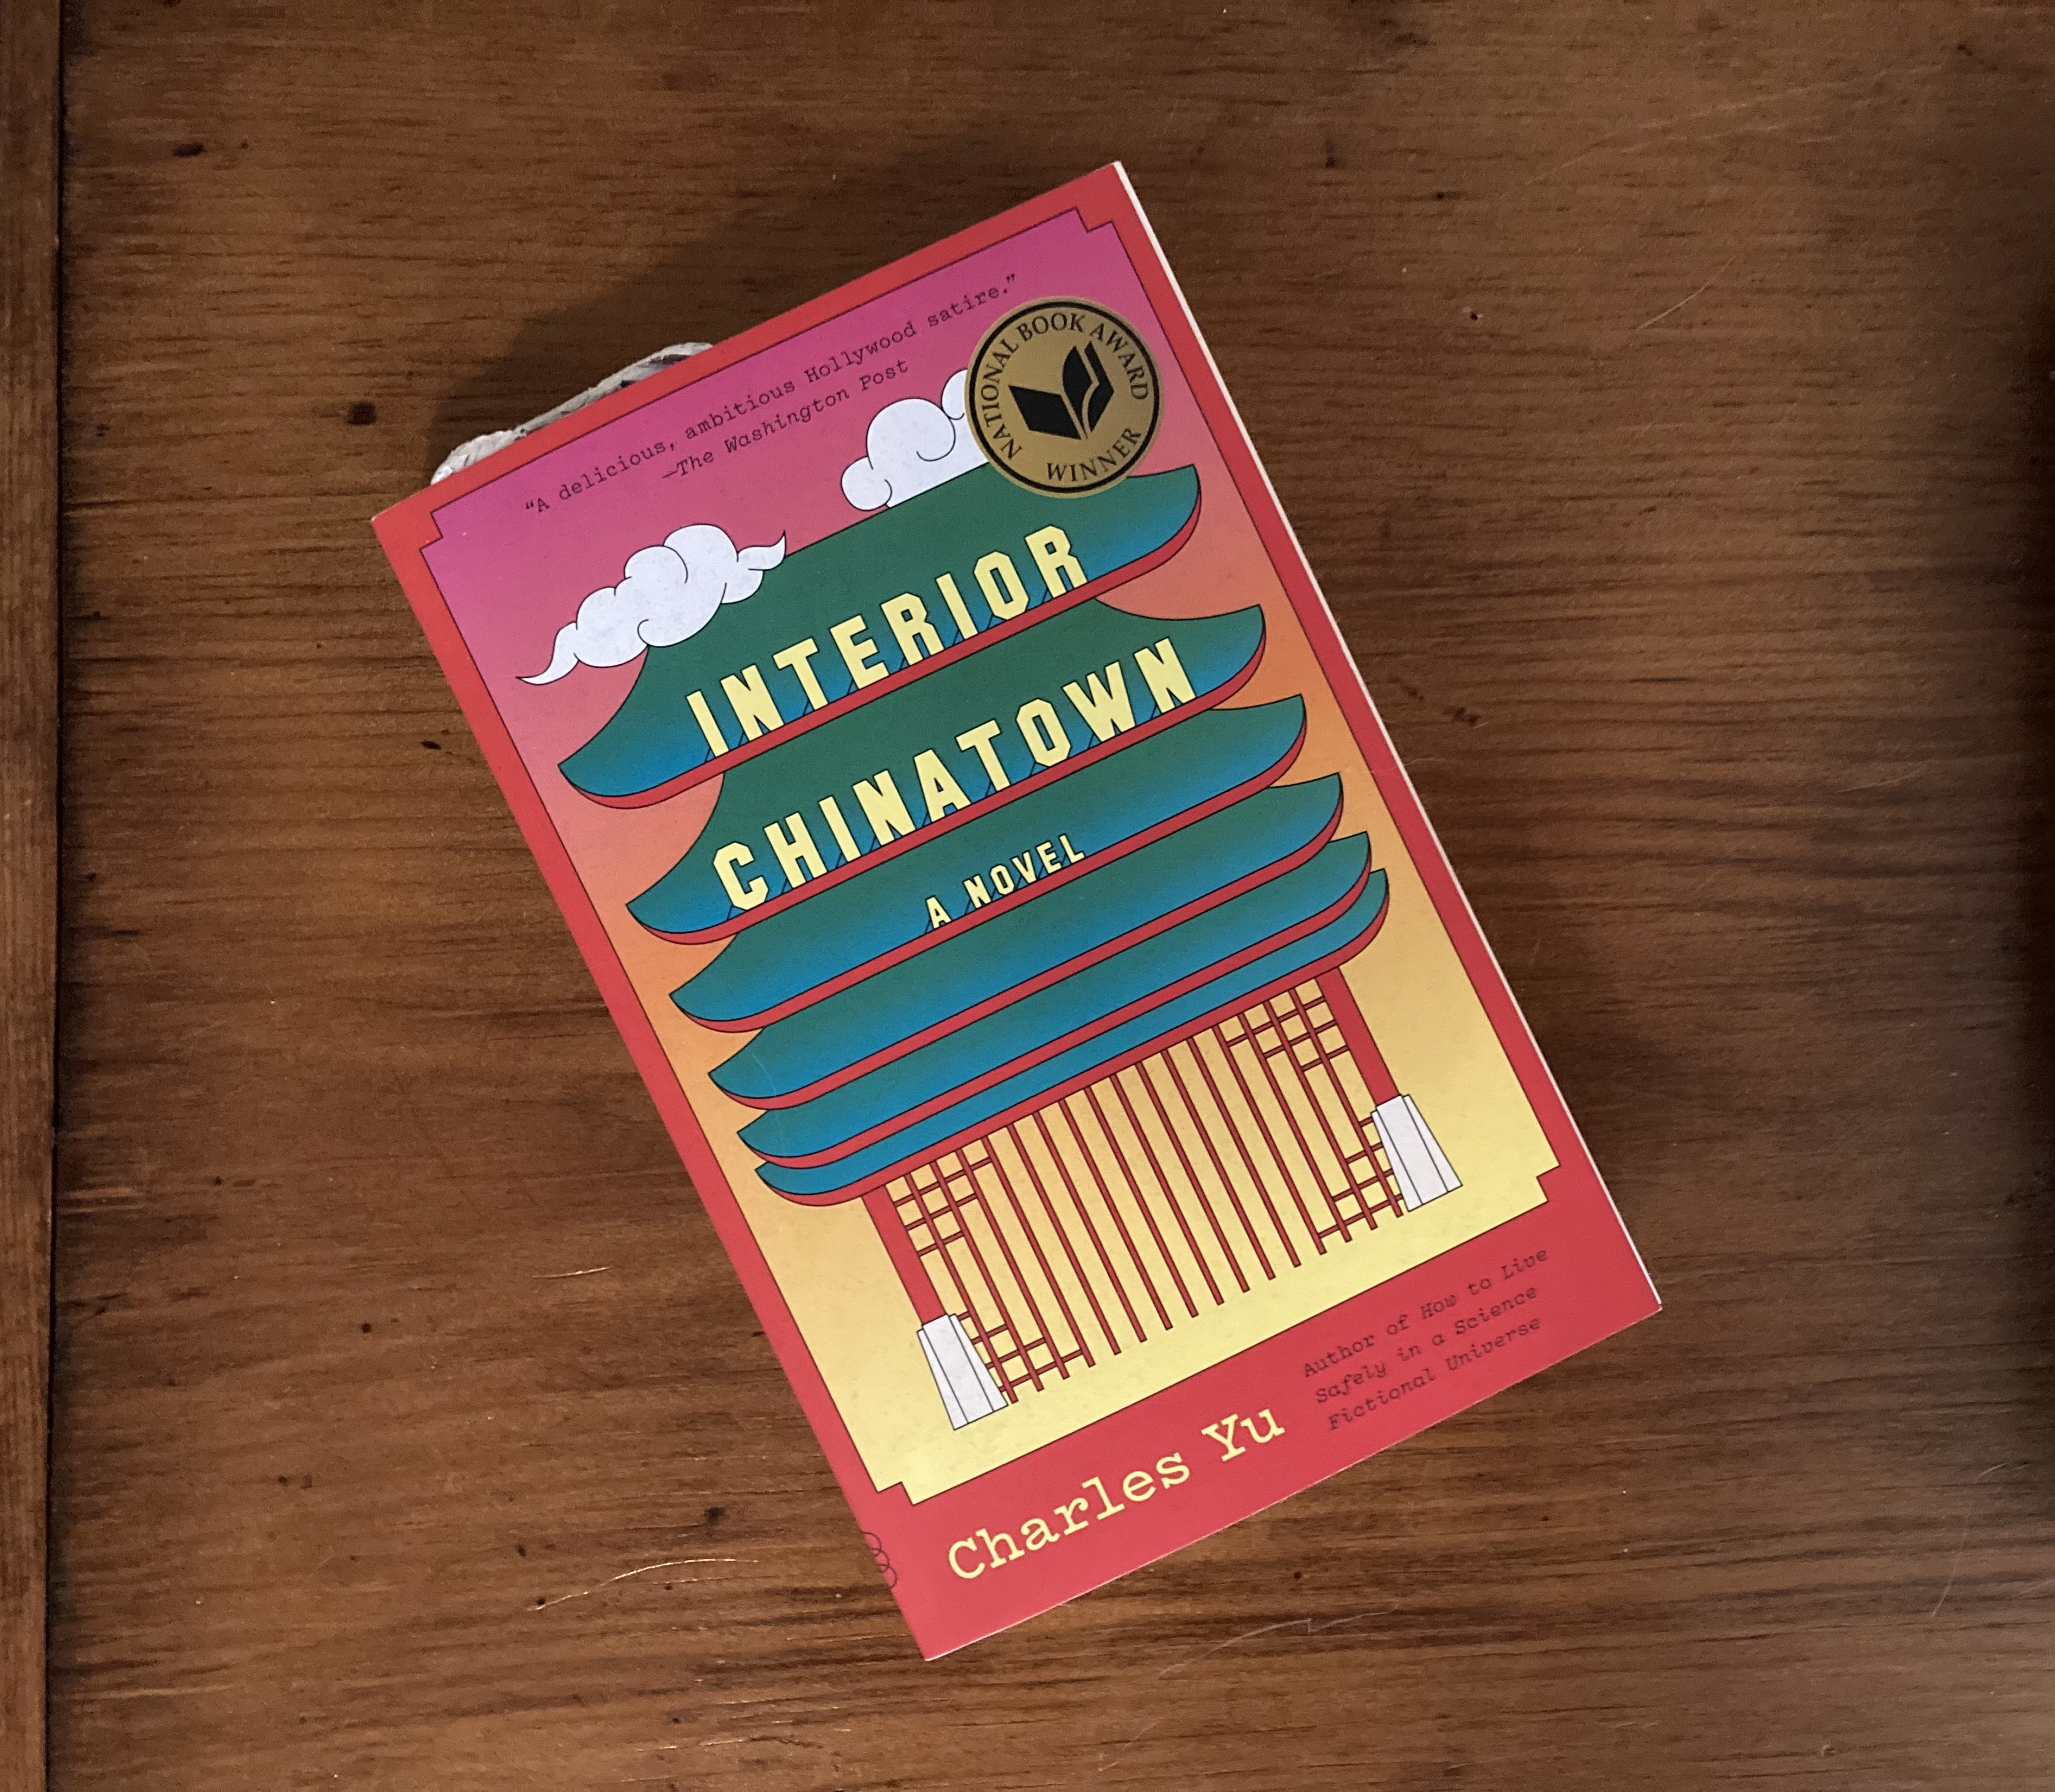 At first comedic and satiric, it becomes somber. Review Interior Chinatown Lit Lens